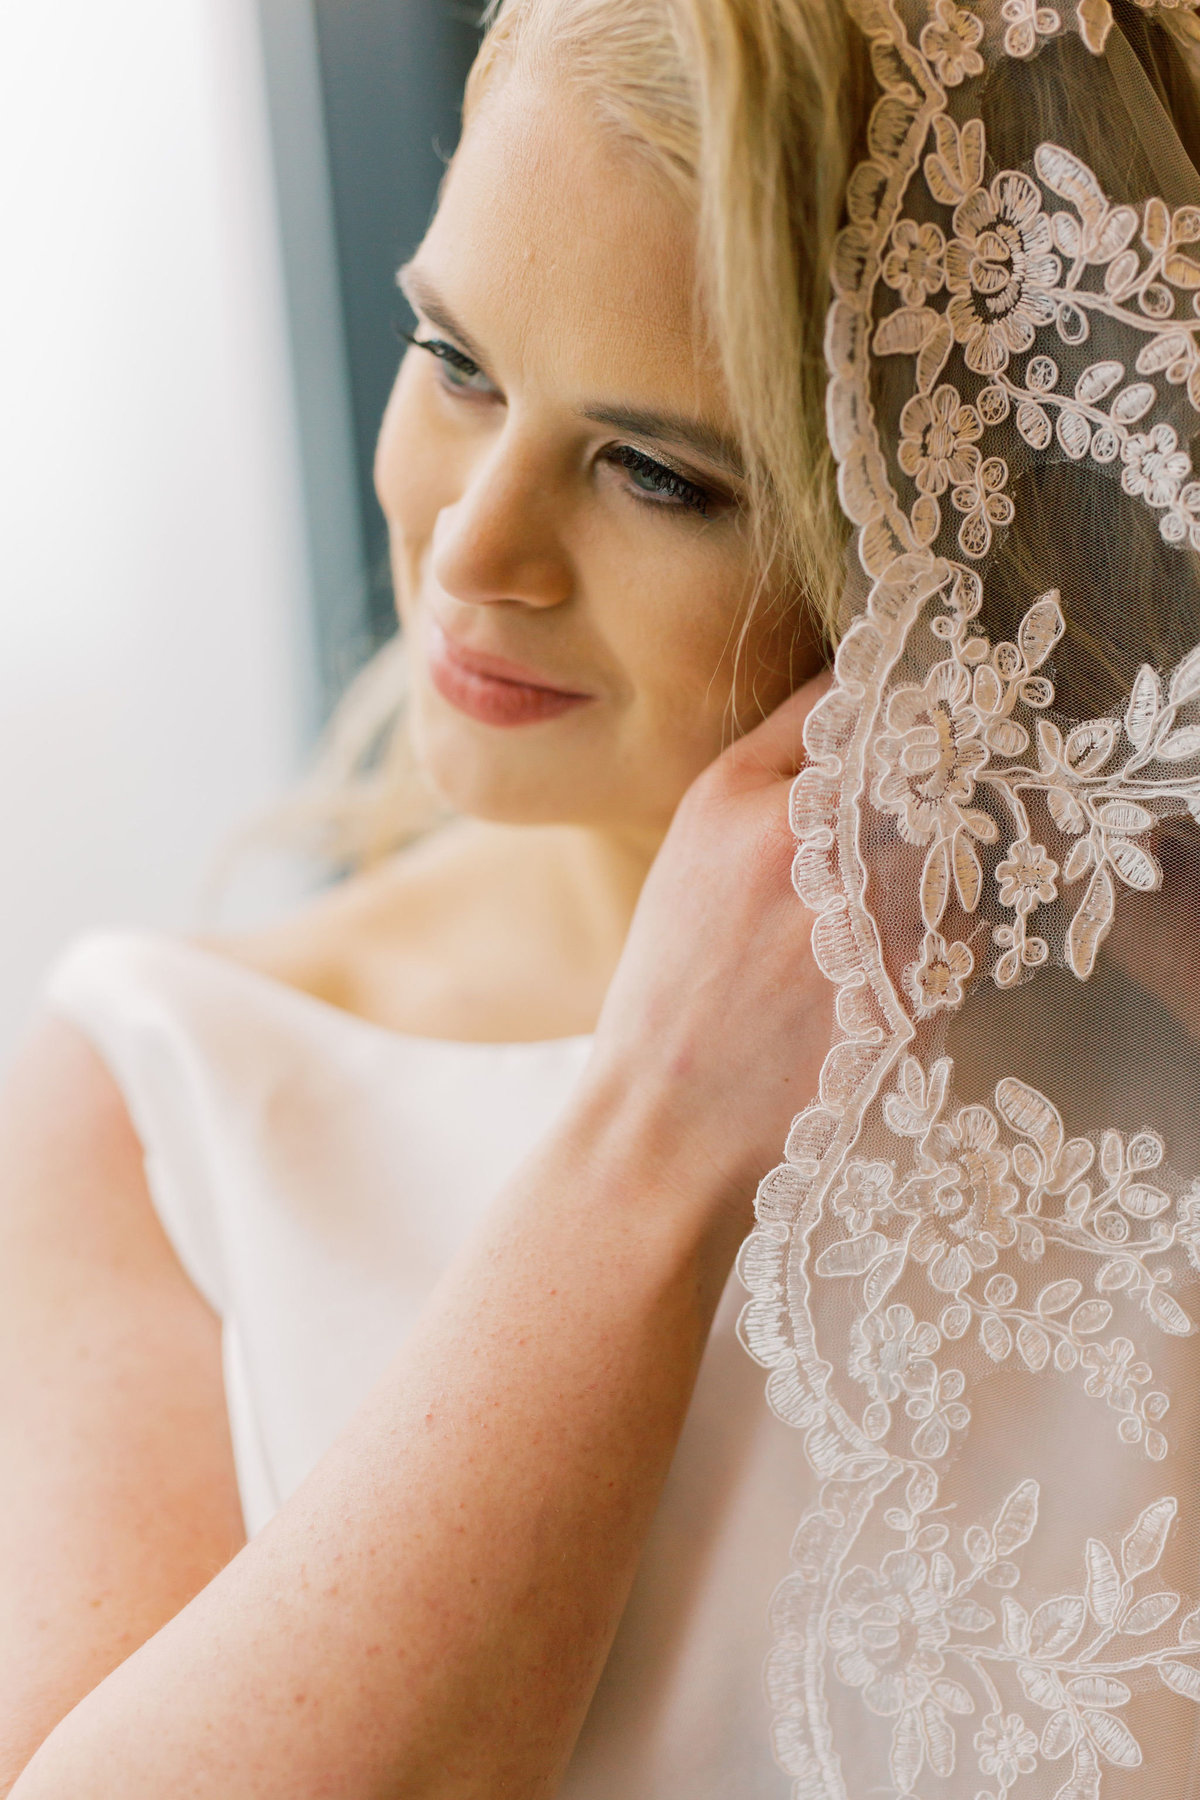 TiffaneyChildsPhotography-ChicagoWeddingPhotographer-Kimberly+Jimmy-ChicagoRenaissanceHotelWedding-BrideReady-44